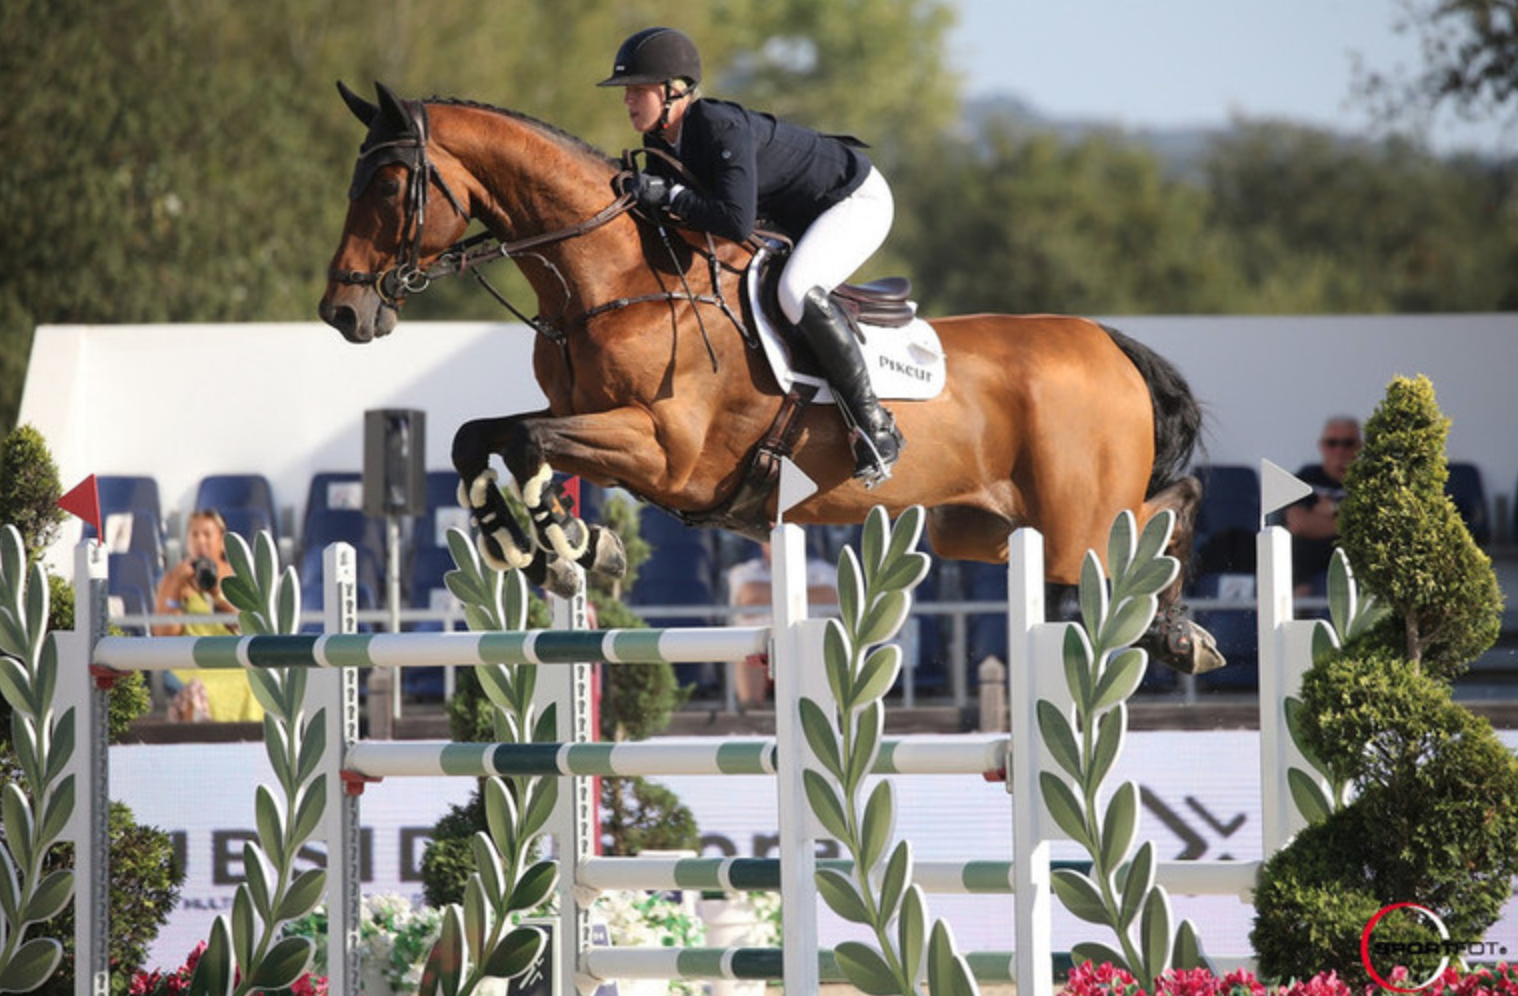 Holly Smith jumps to second ranking win of the weekend